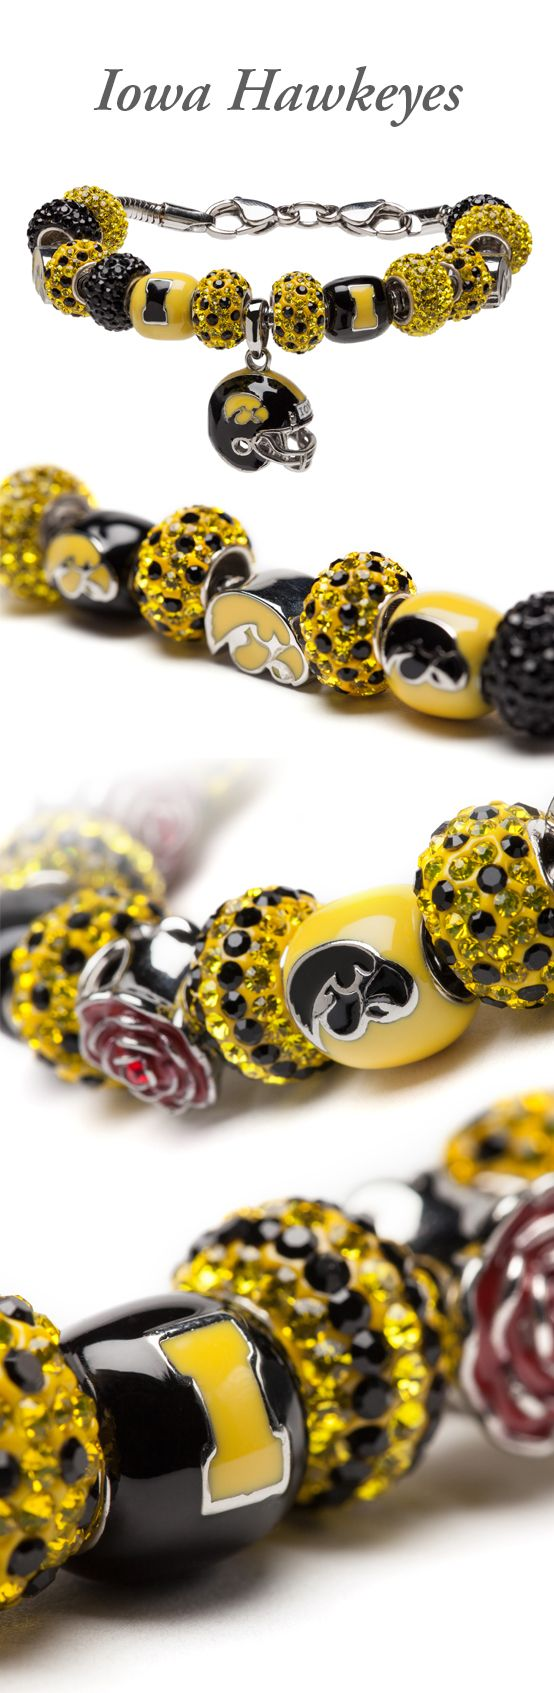 university of iowa iowa hawkeyes jewelry www